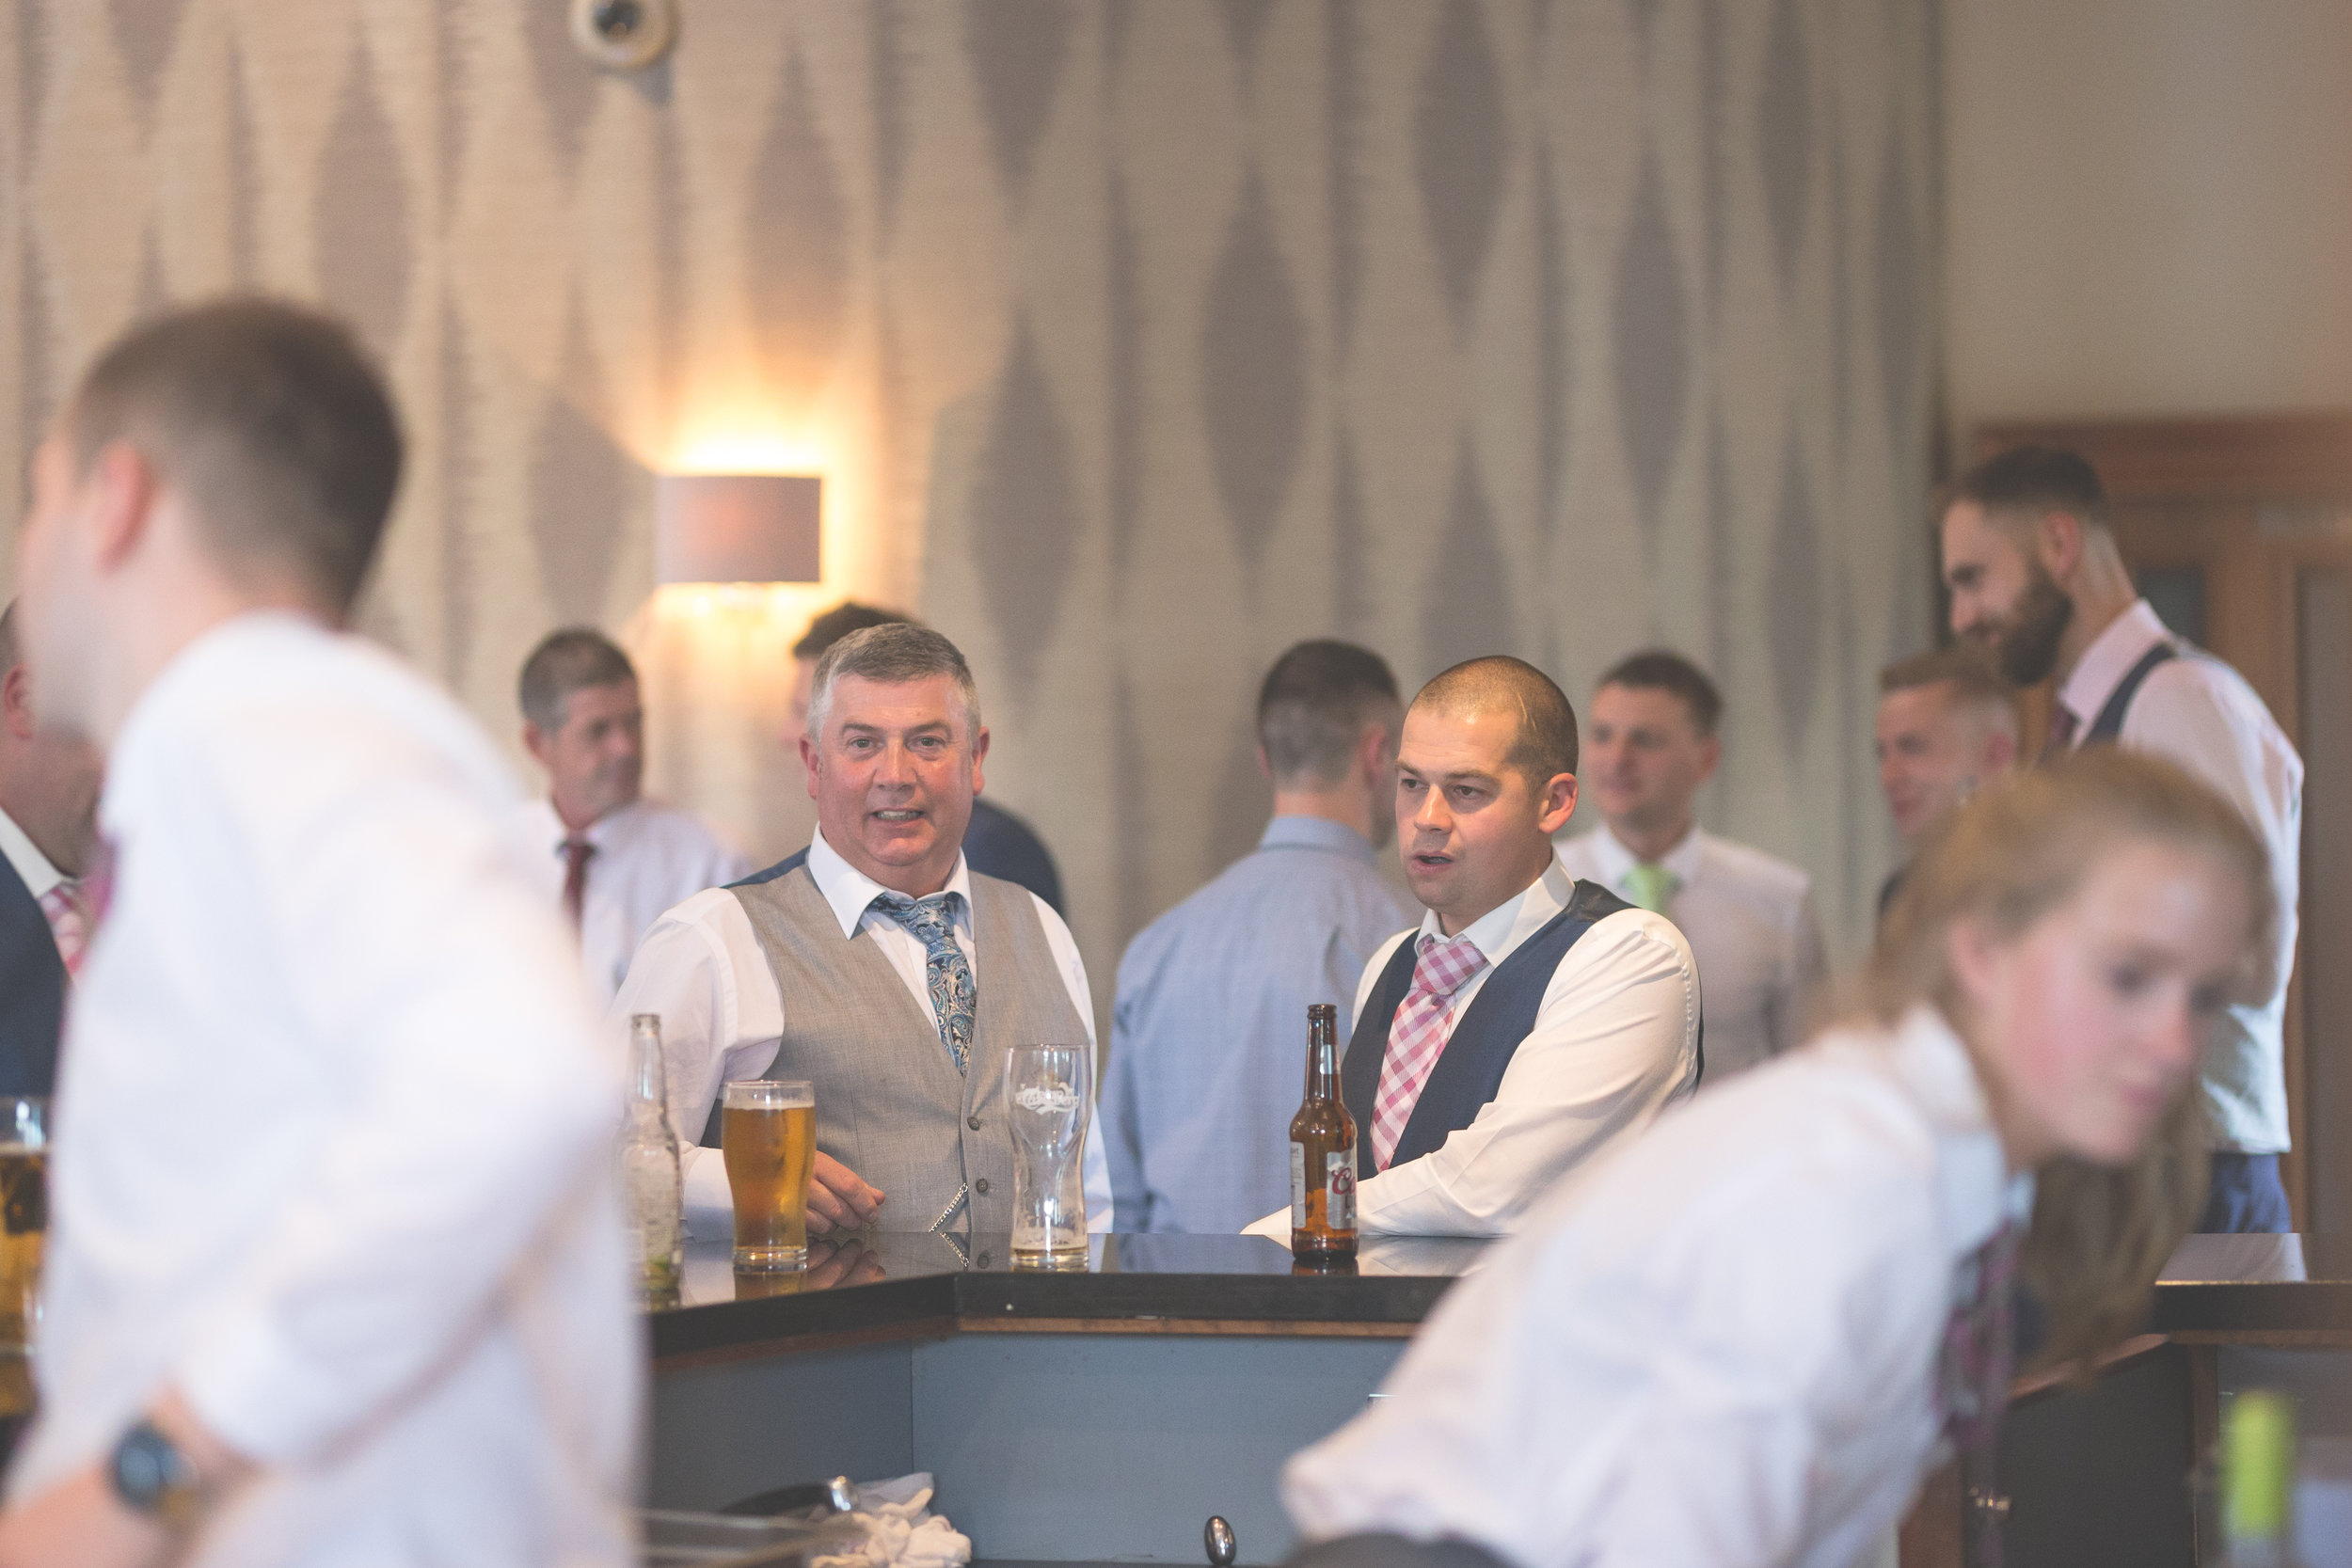 Antoinette & Stephen - Speeches | Brian McEwan Photography | Wedding Photographer Northern Ireland 144.jpg